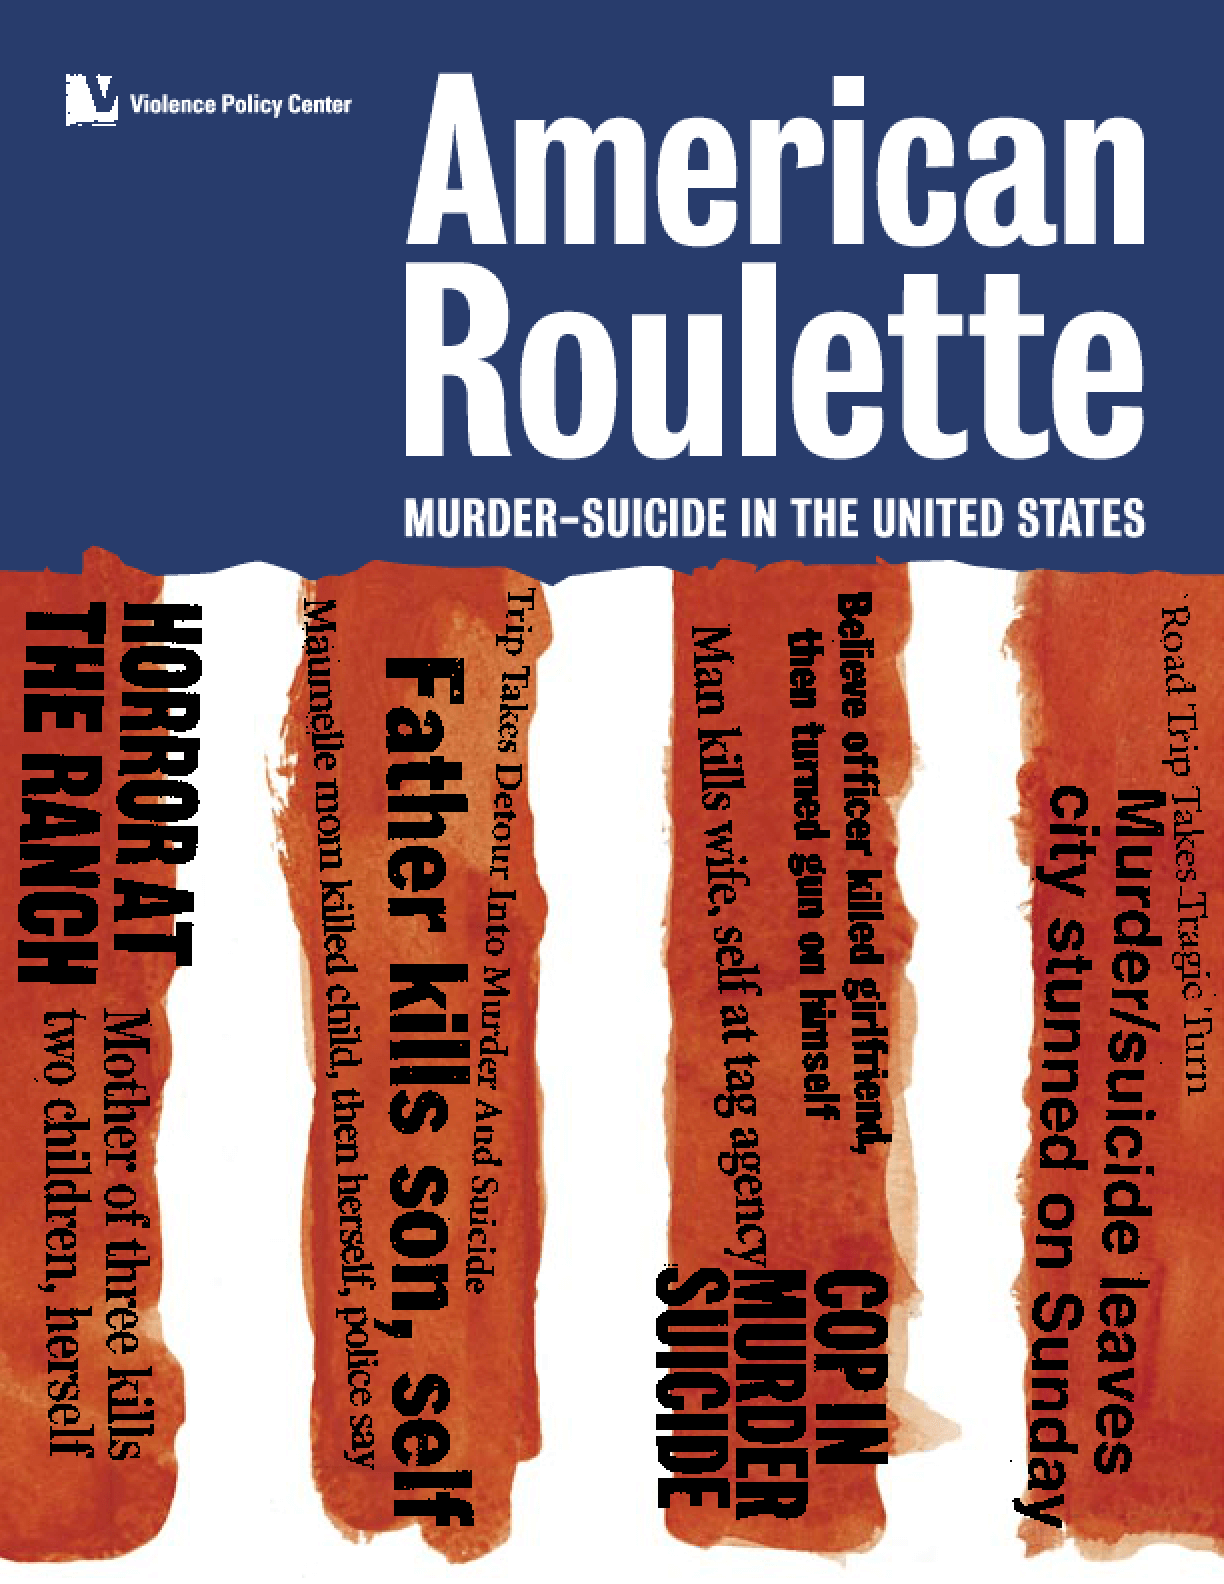 American Roulette: Murder-Suicide in the United States